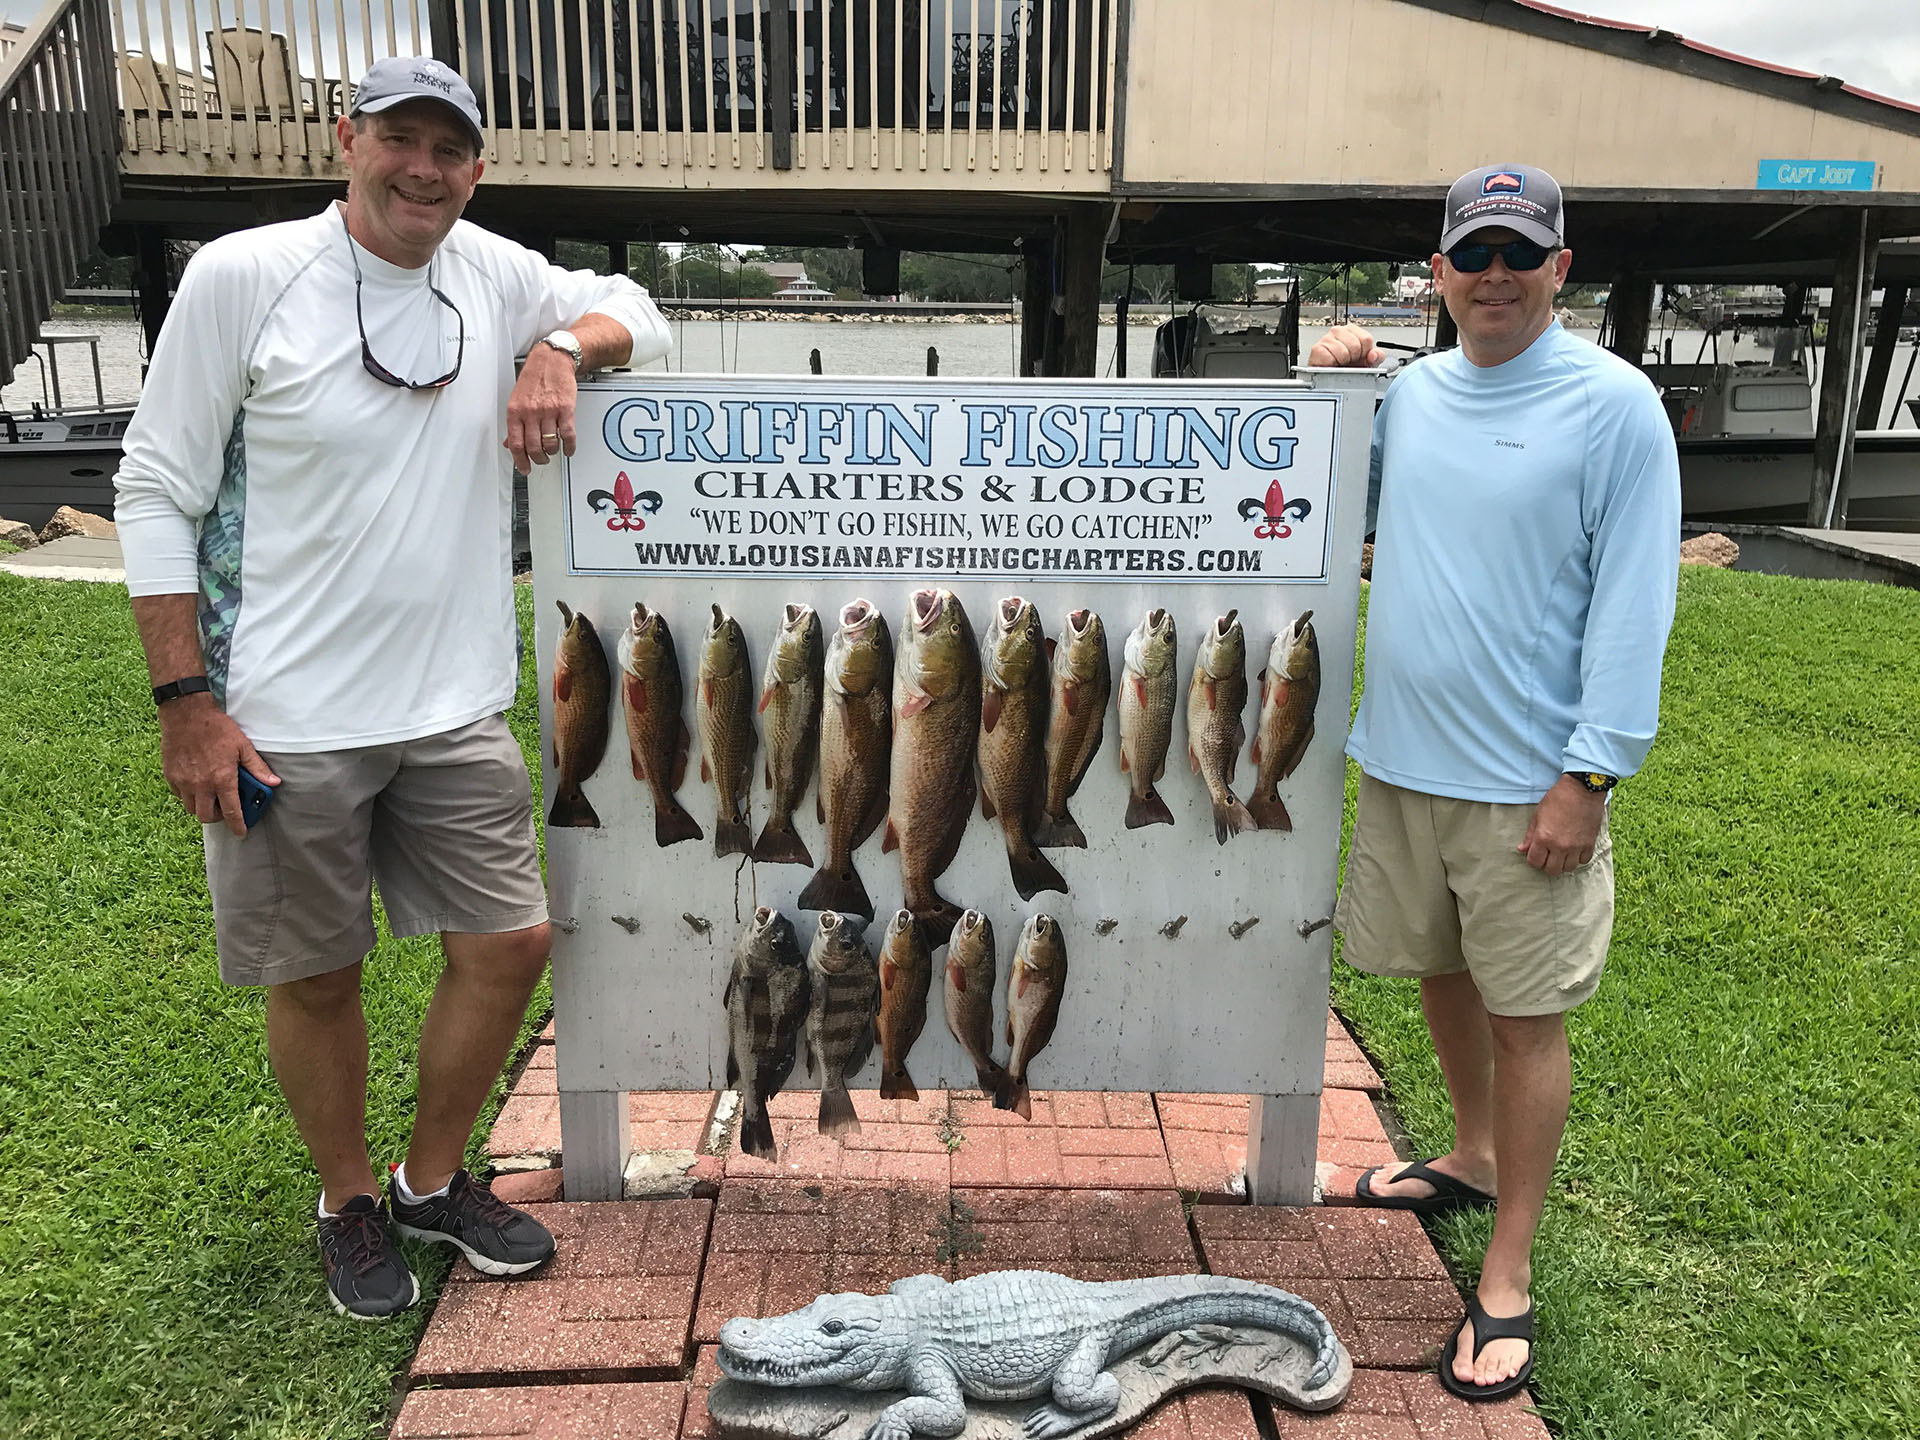 New orleans louisiana fishing charters lodge griffin for La fishing charters